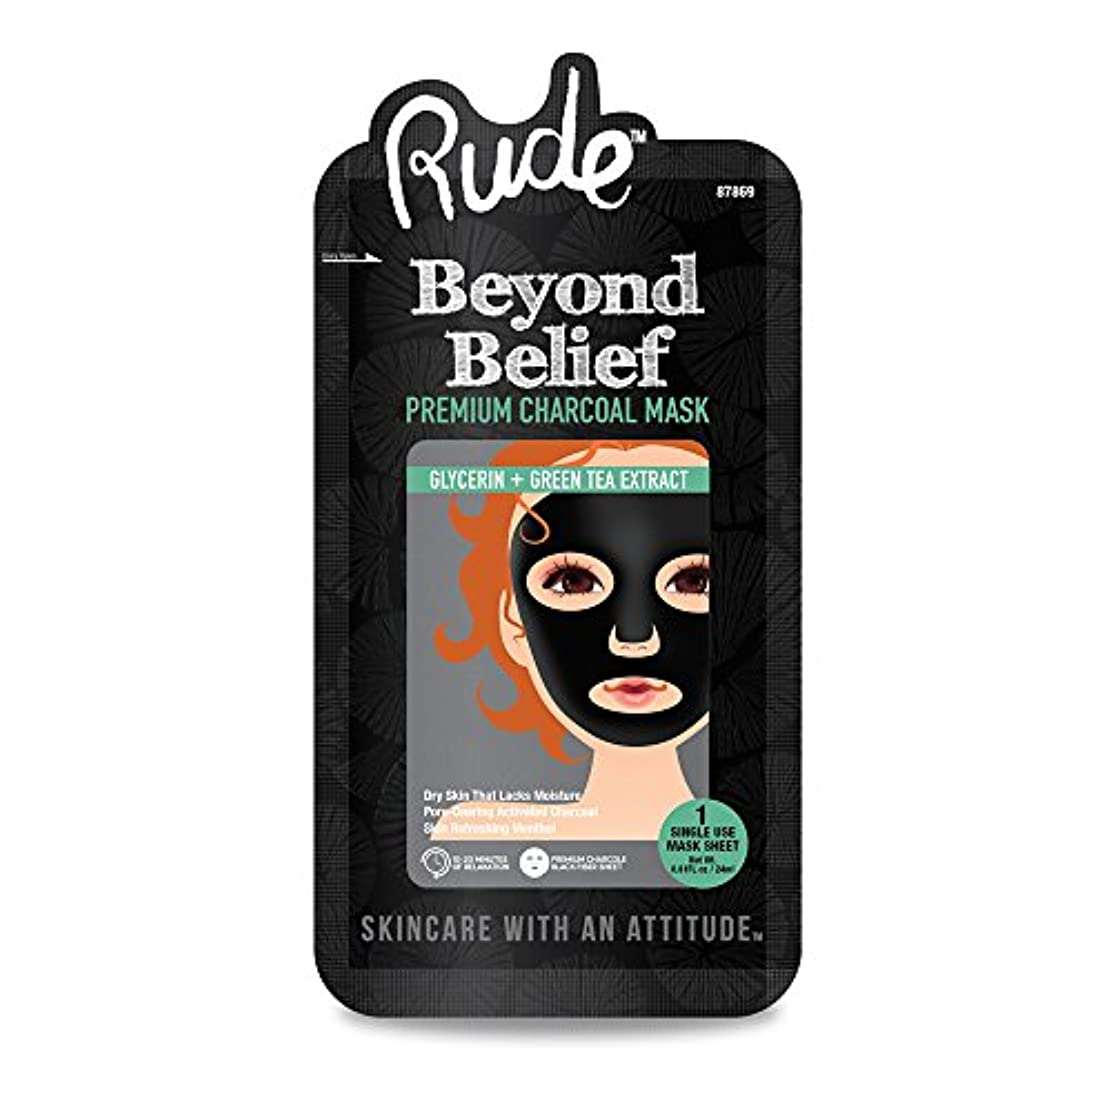 取り消す順応性のある責め(3 Pack) RUDE Beyond Belief Purifying Charcoal Face Mask (並行輸入品)